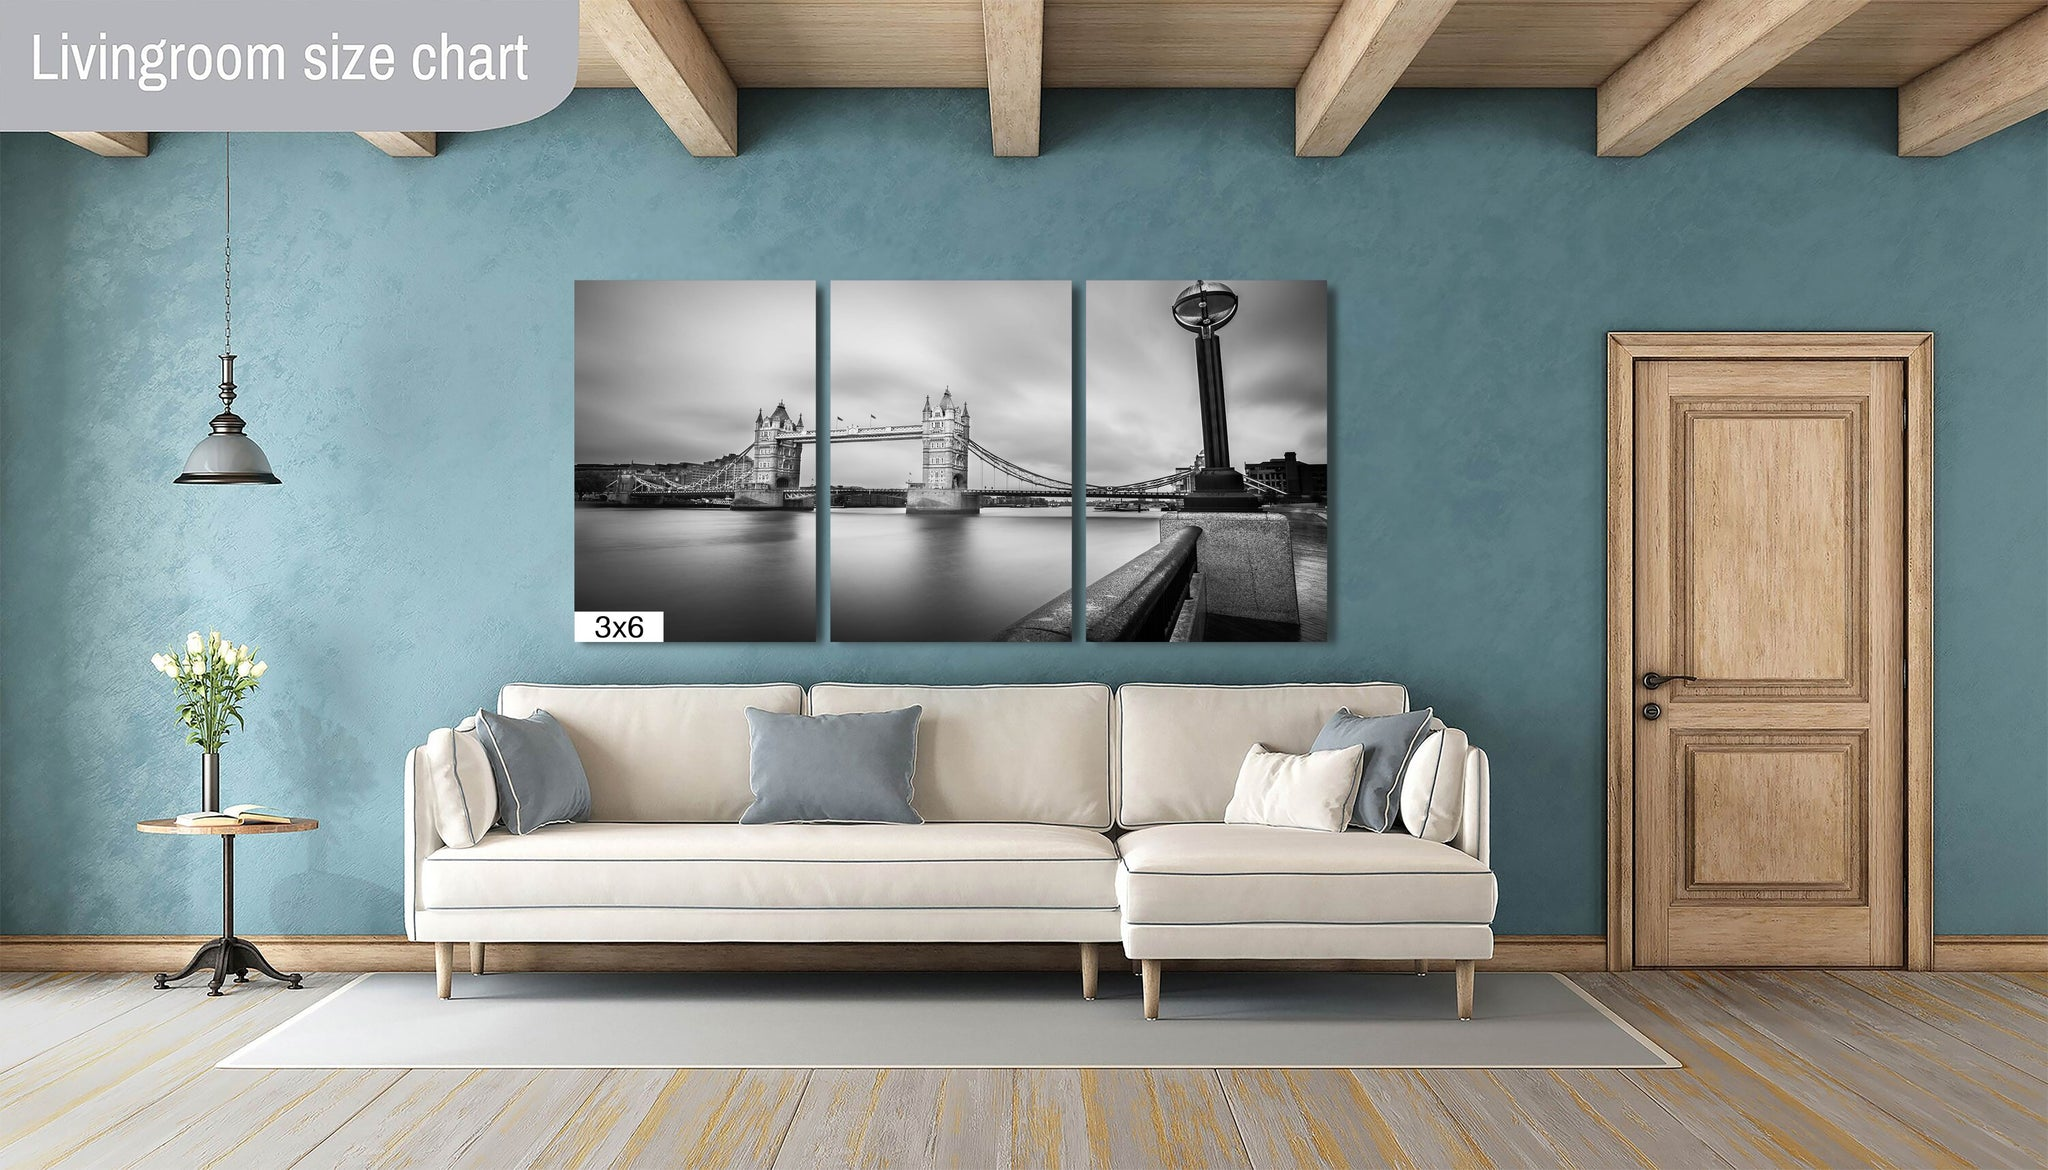 Tower Bridge Downtown London England Canvas Print Metal Art Cityscape Landmark Bedroom Livingroom wall art decor home poster